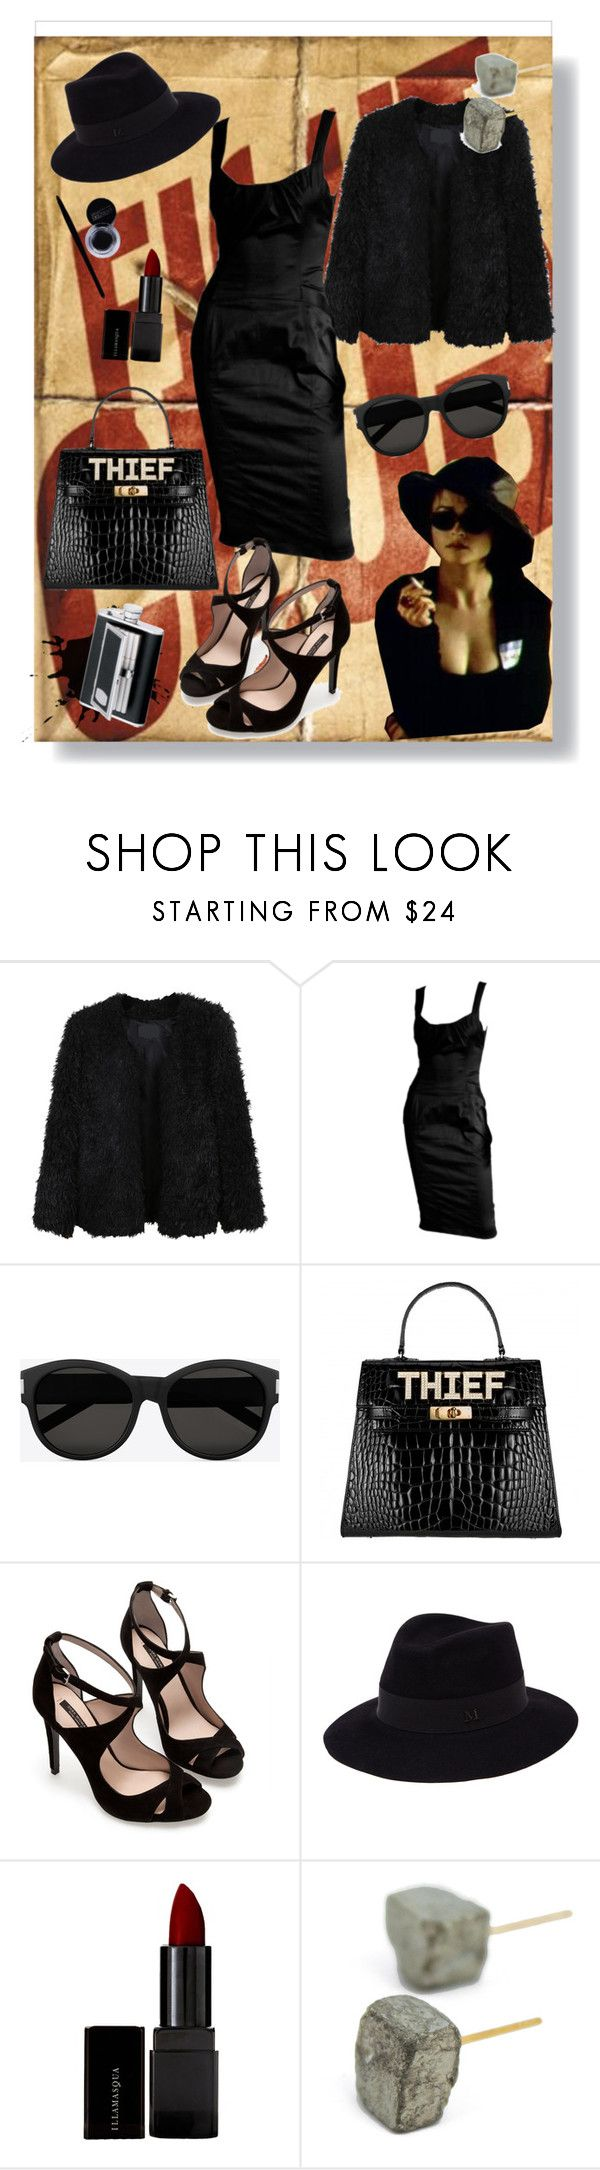 """""""#197 Marla Singer"""" by fufuun ❤ liked on Polyvore featuring LE3NO, Tom Ford, Yves Saint Laurent, Zara, Maison Michel, Illamasqua, SP Black, women's clothing, women's fashion and women"""